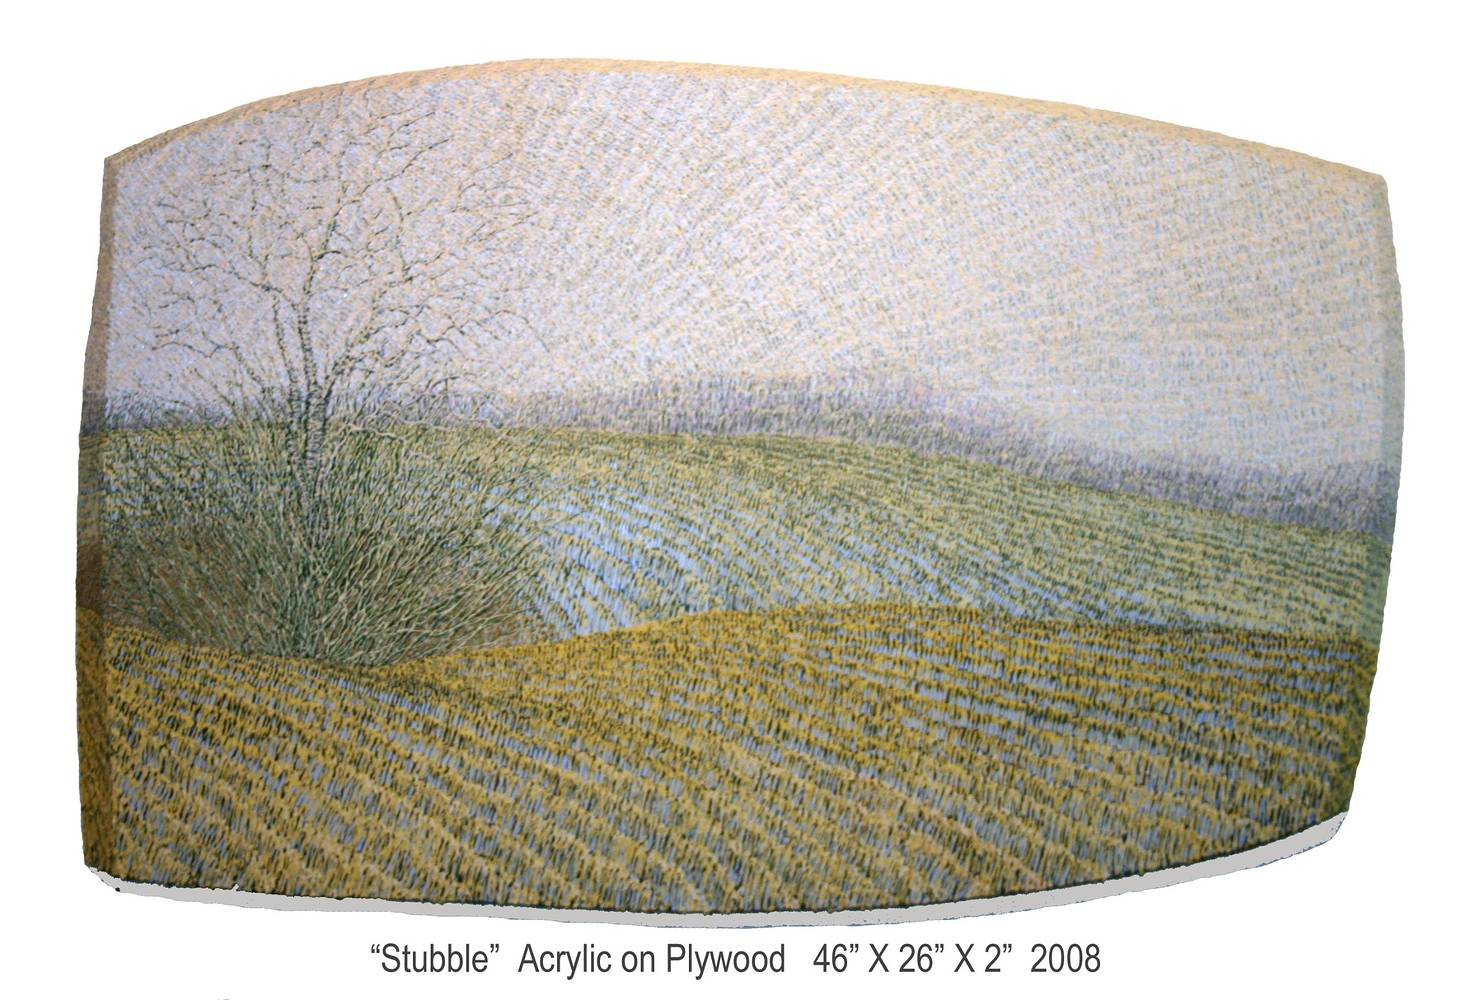 Stubble, 2008 by Douglas Moulden